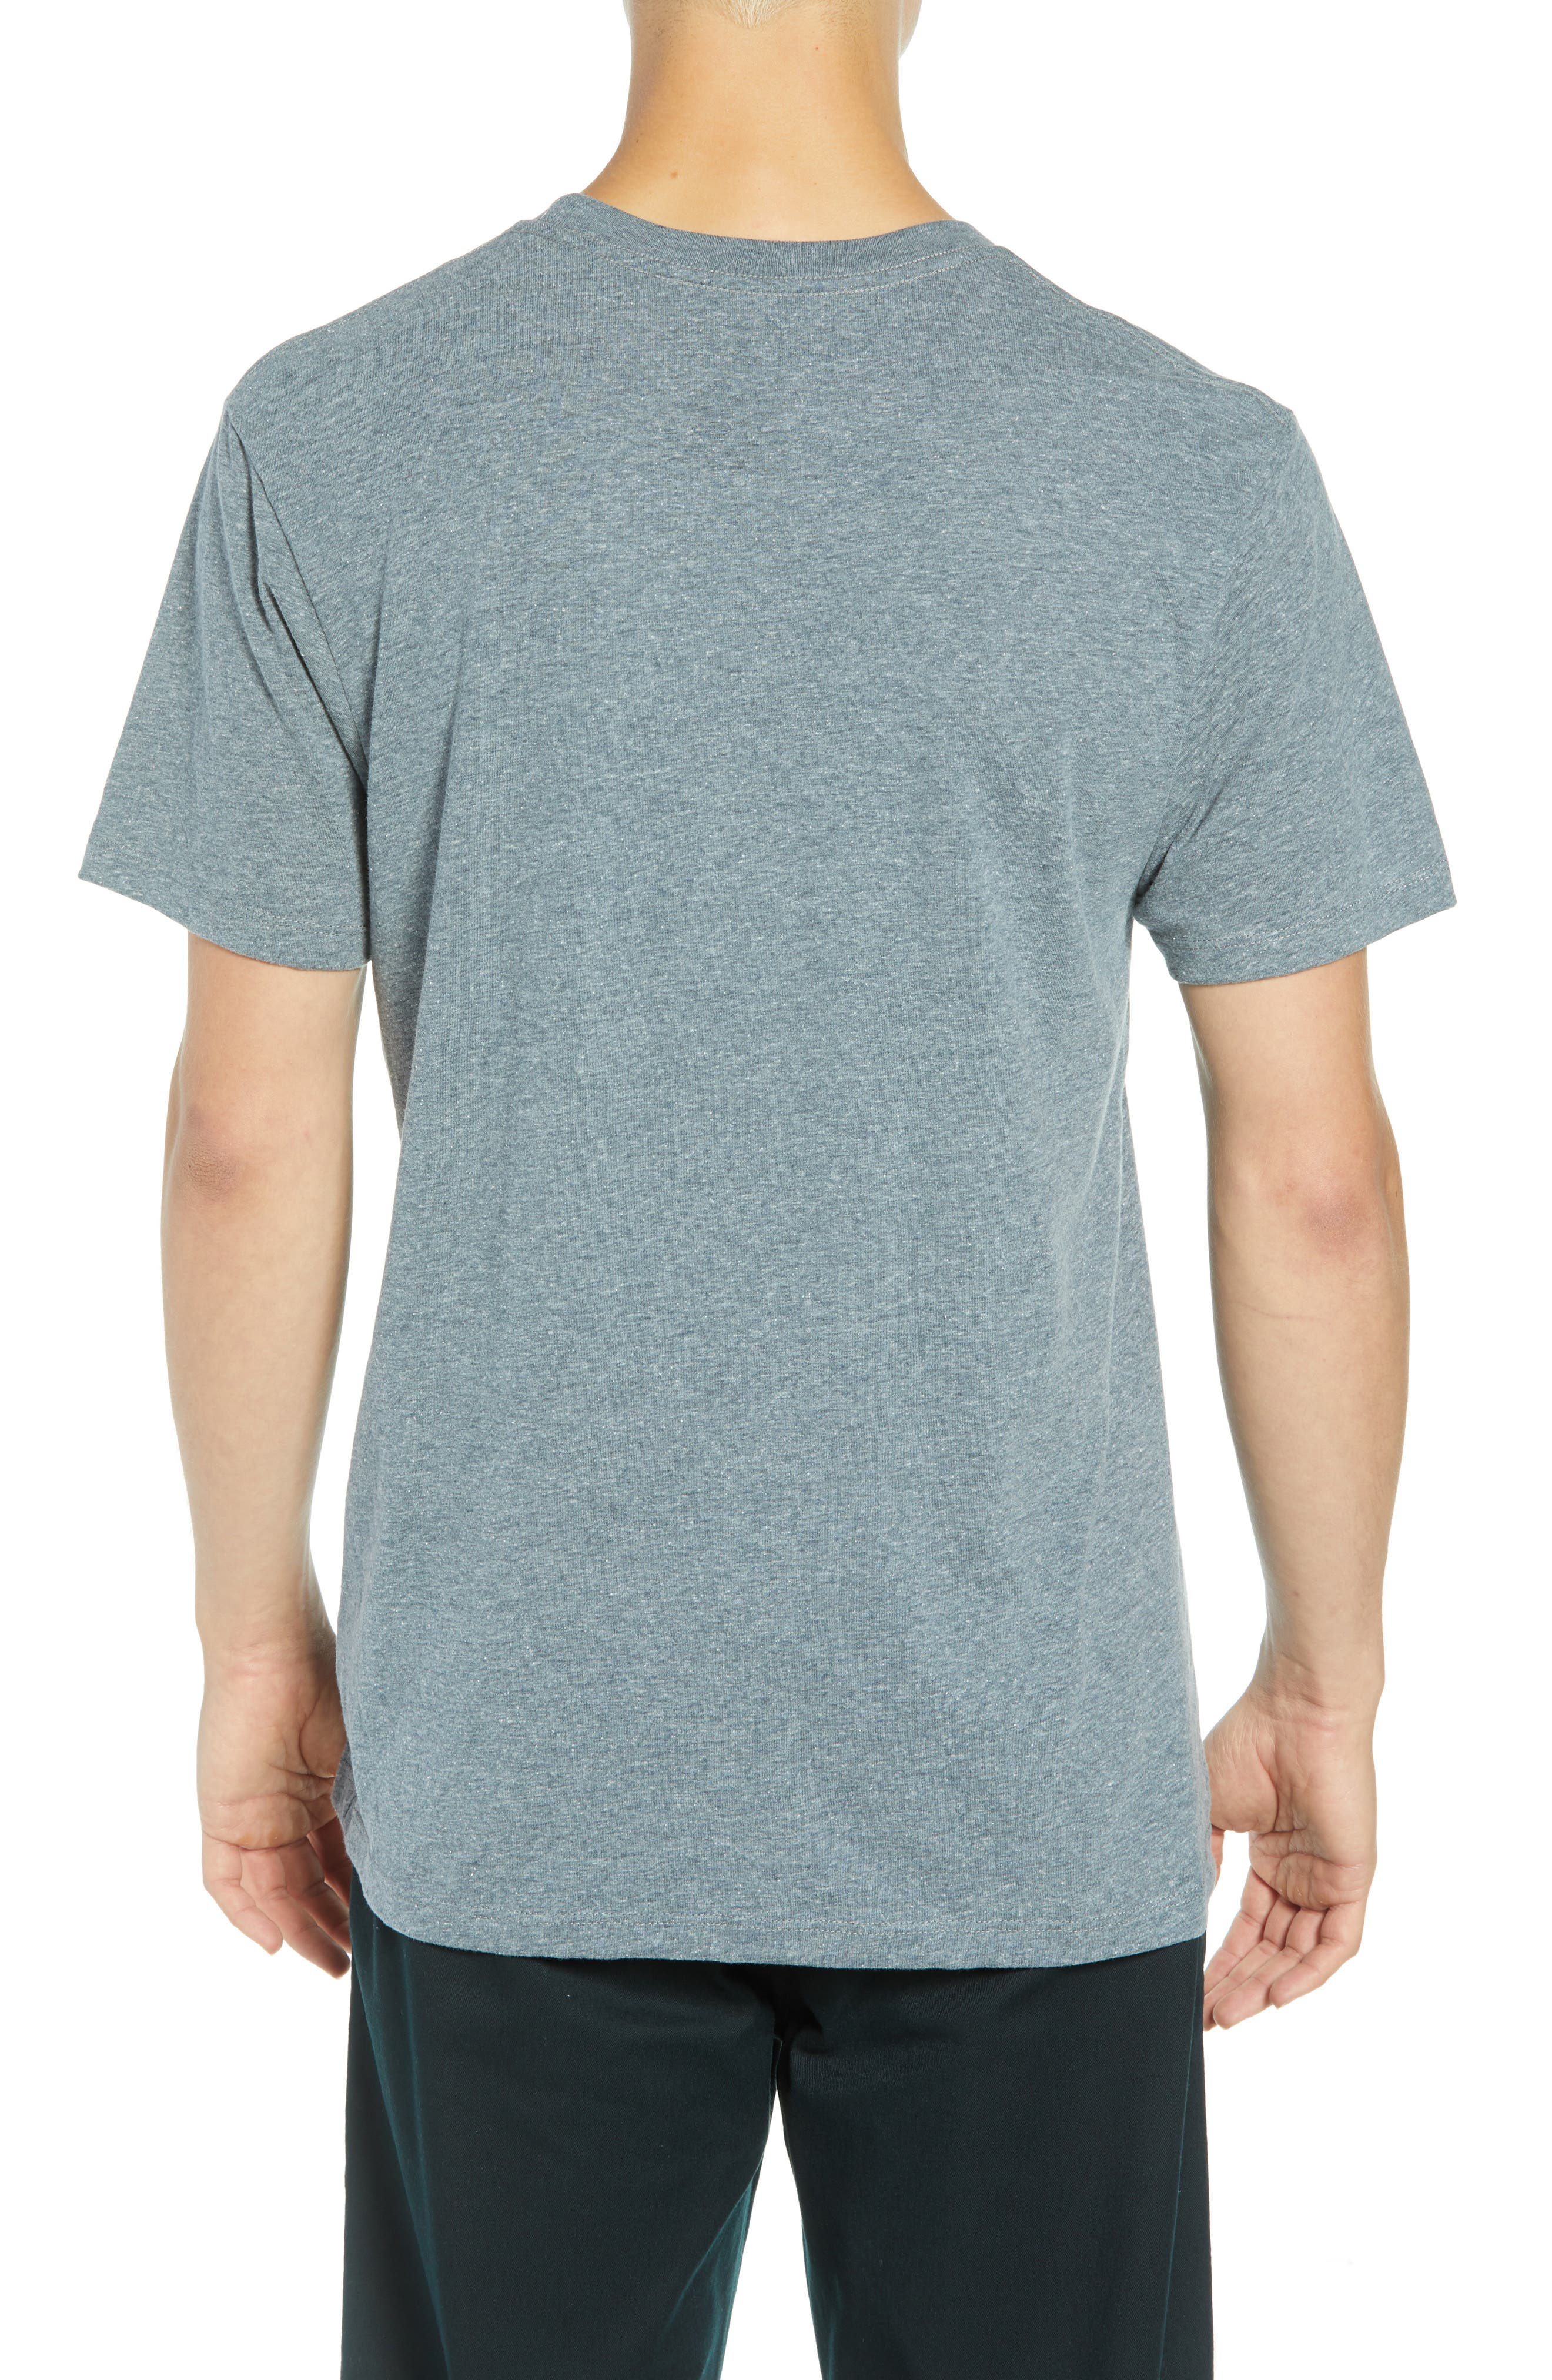 Print Box Graphic T-Shirt,                             Alternate thumbnail 2, color,                             HEATHER GREY/ PEACE OUT FLORAL